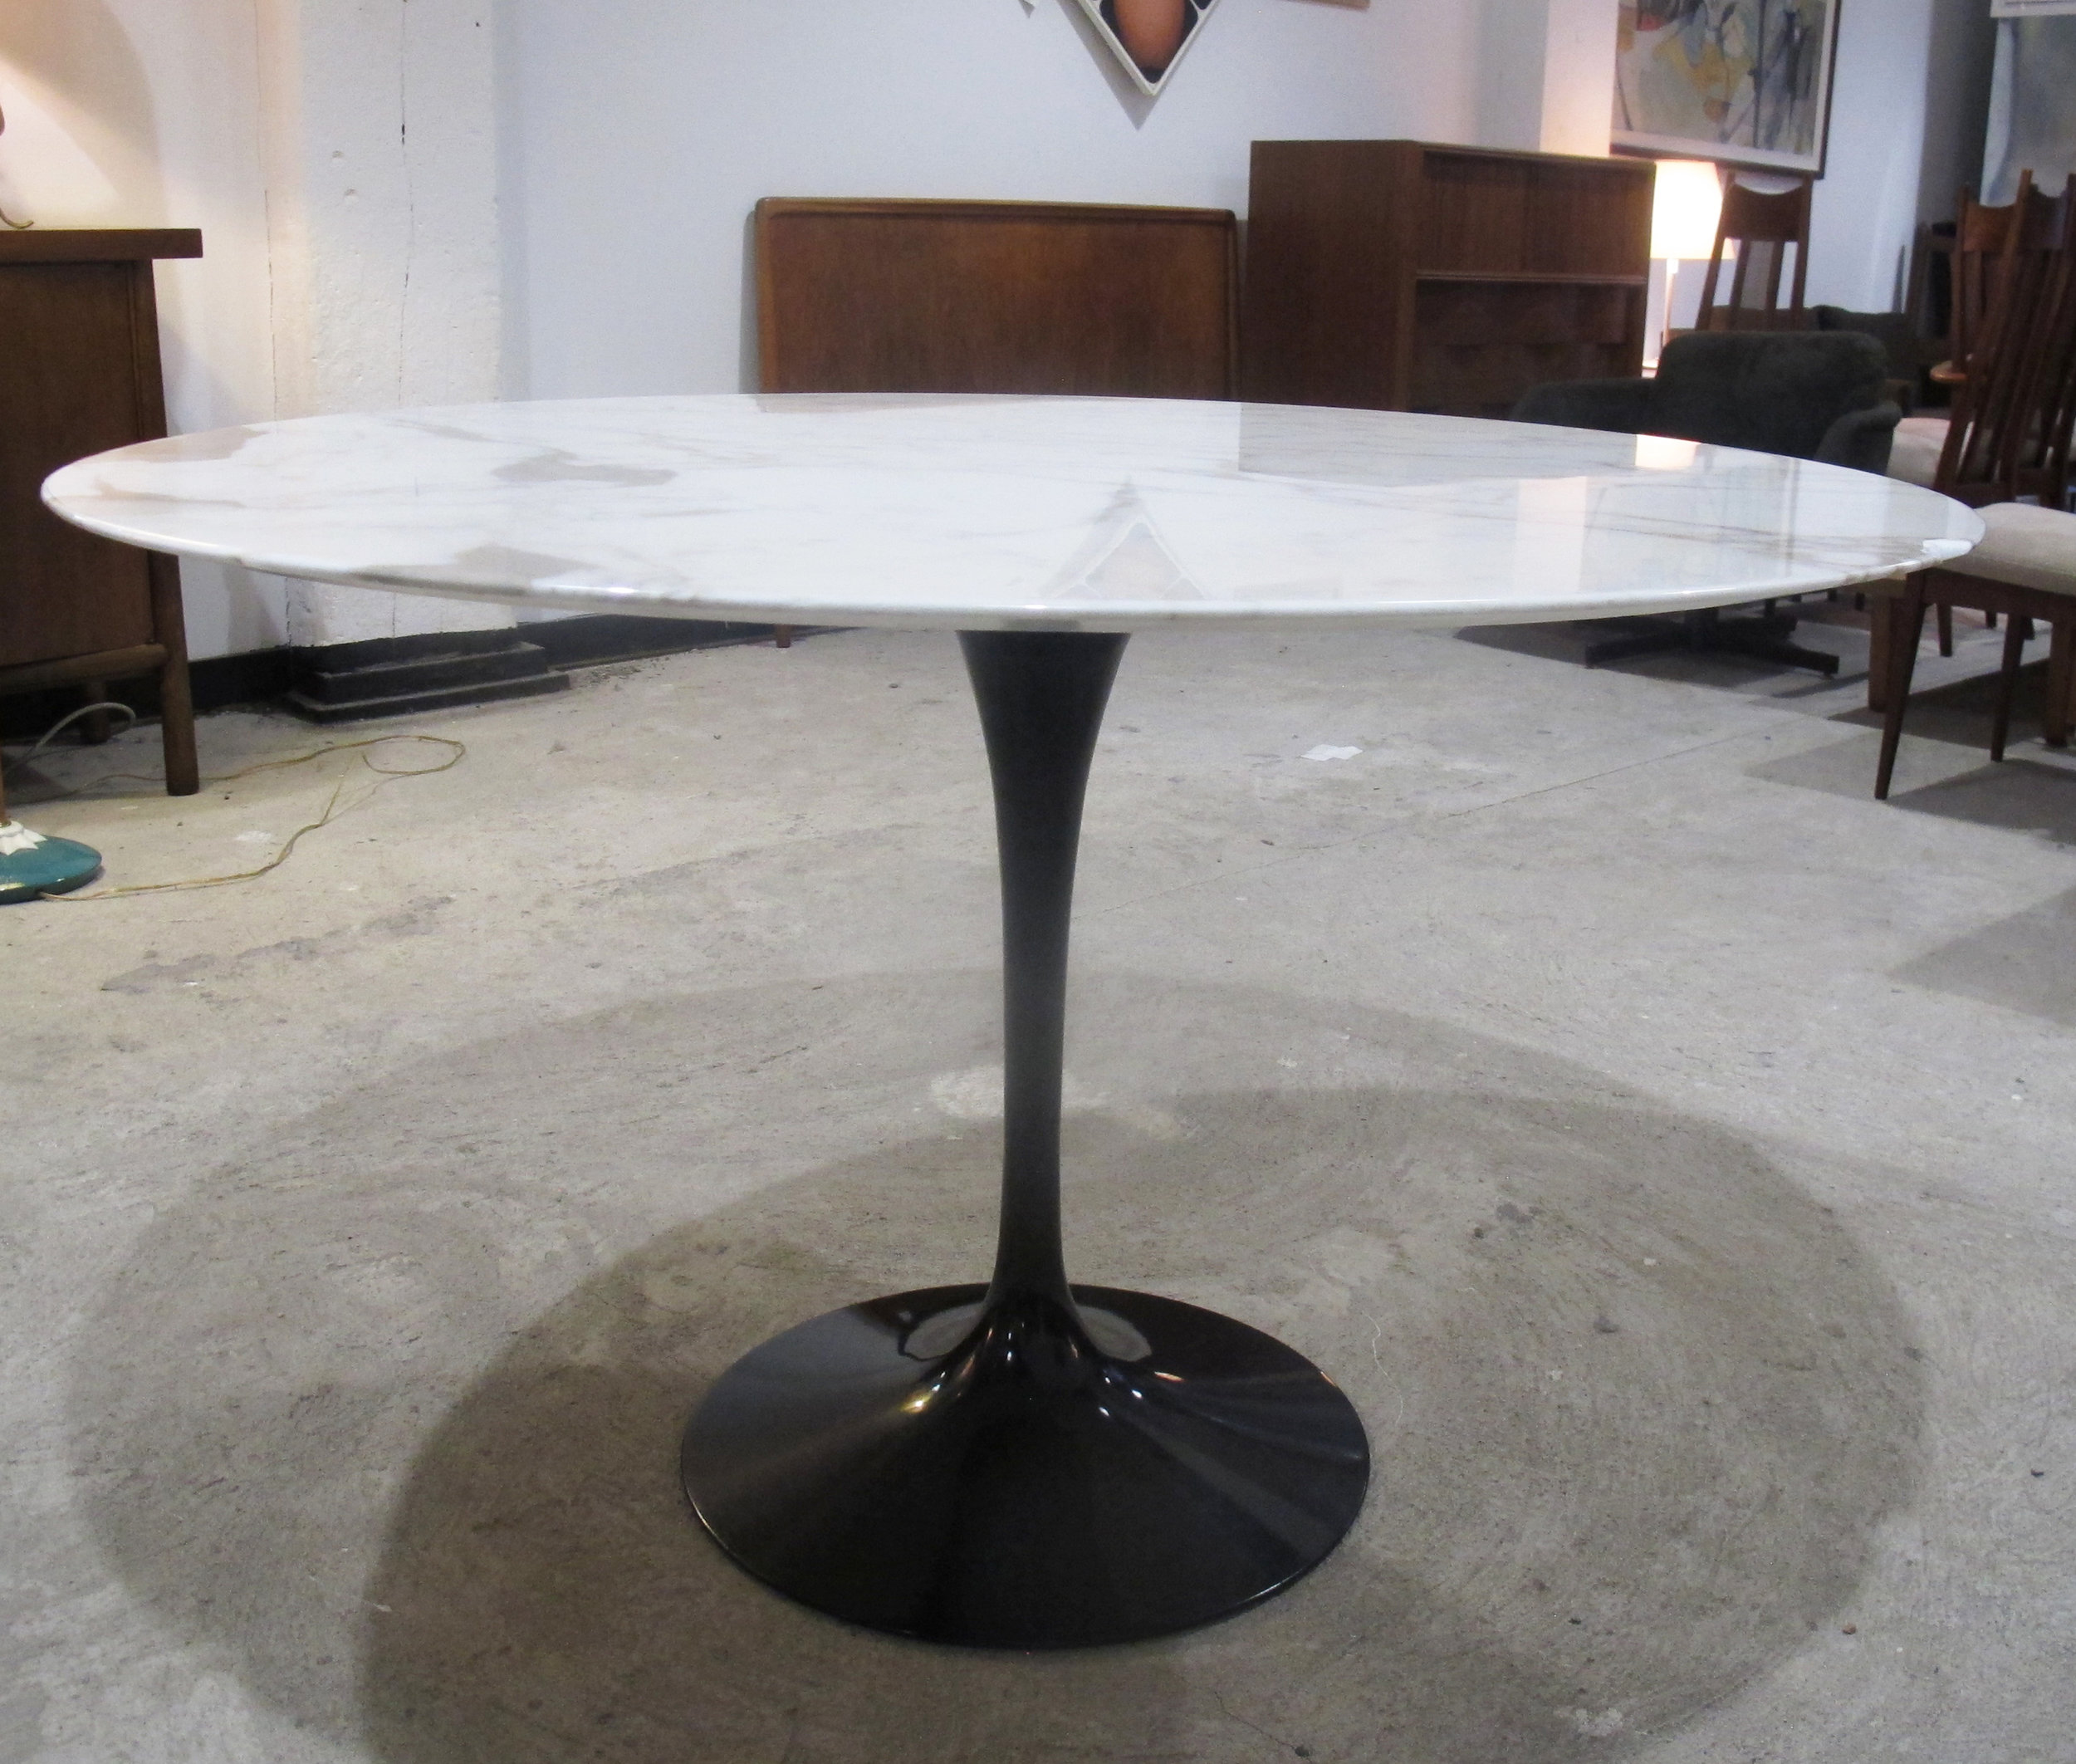 KNOLL SAARINEN CALACATTA MARBLE DINING TABLE WITH BLACK TULIP BASE